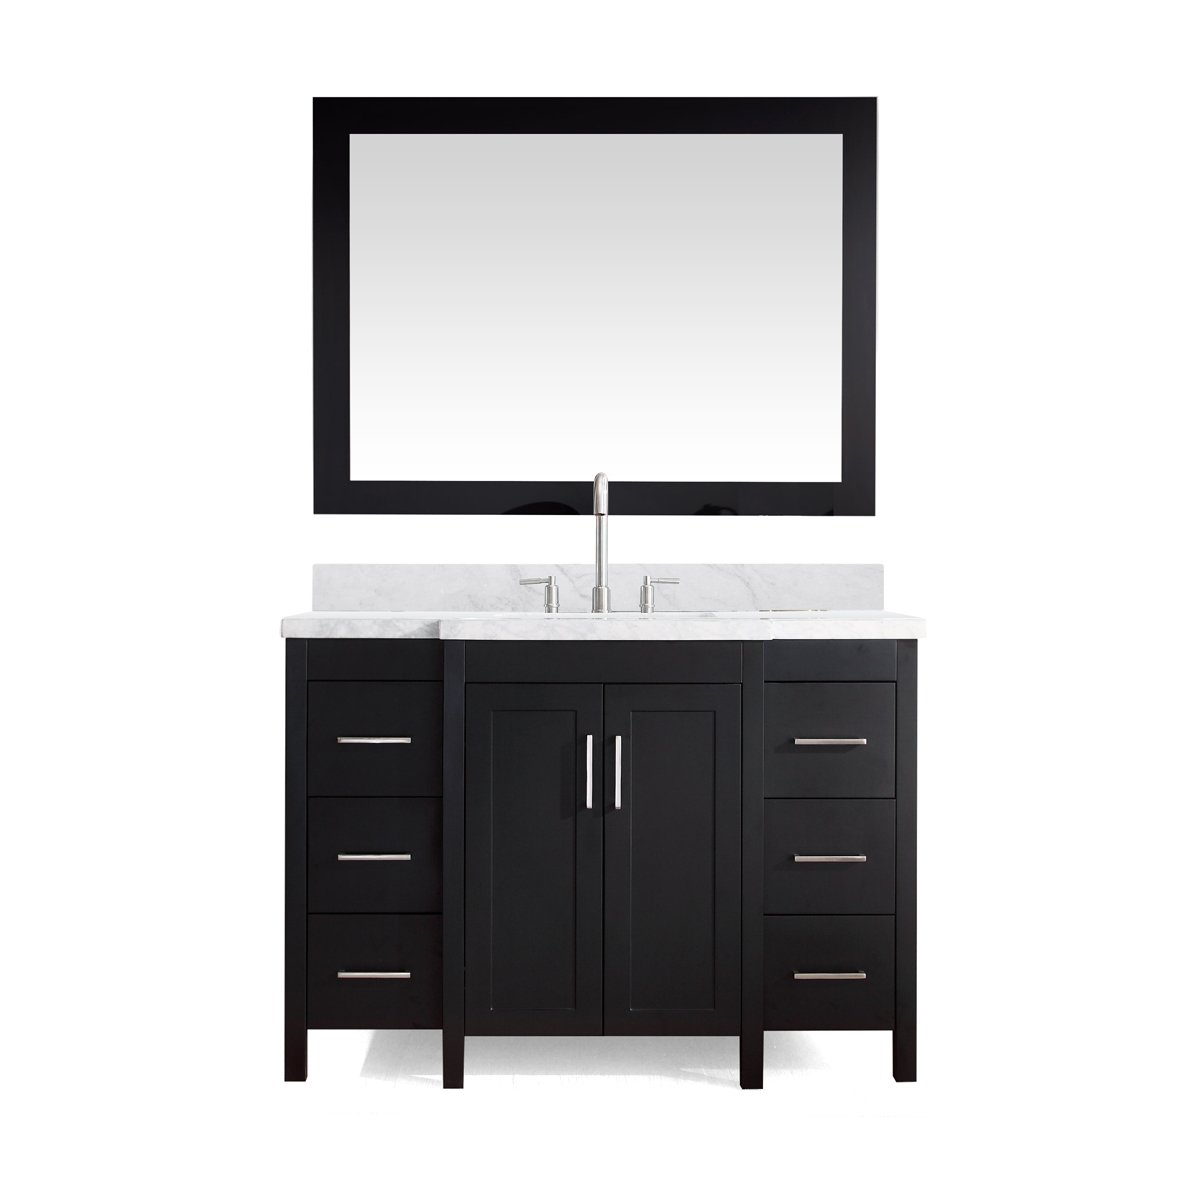 cabinet sink set products single in vanitycabinetusa vanity series usa bathroom